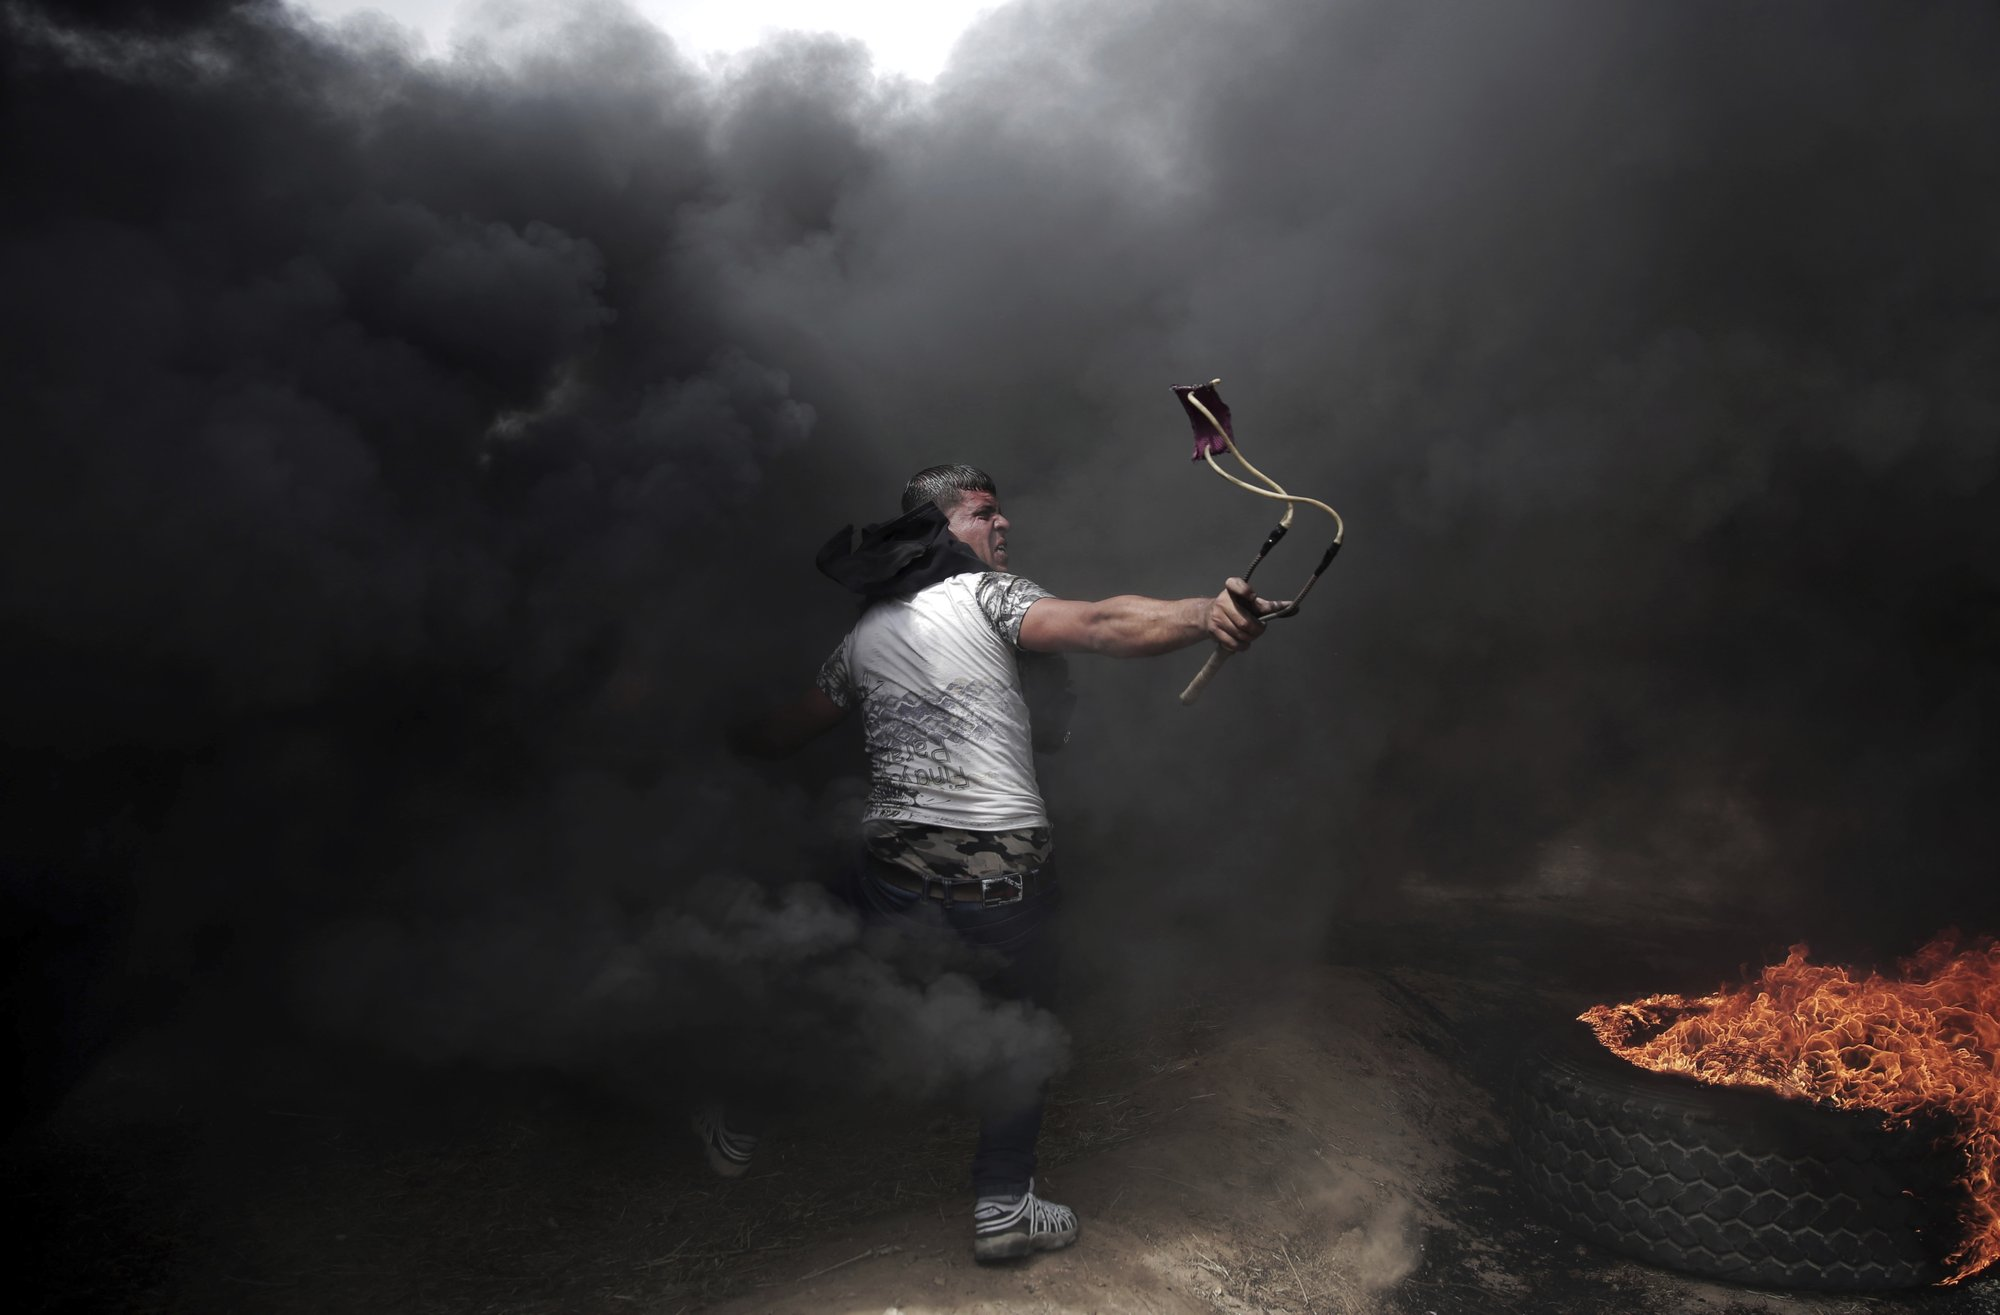 AP PHOTOS: Gaza images on display in France show resilience